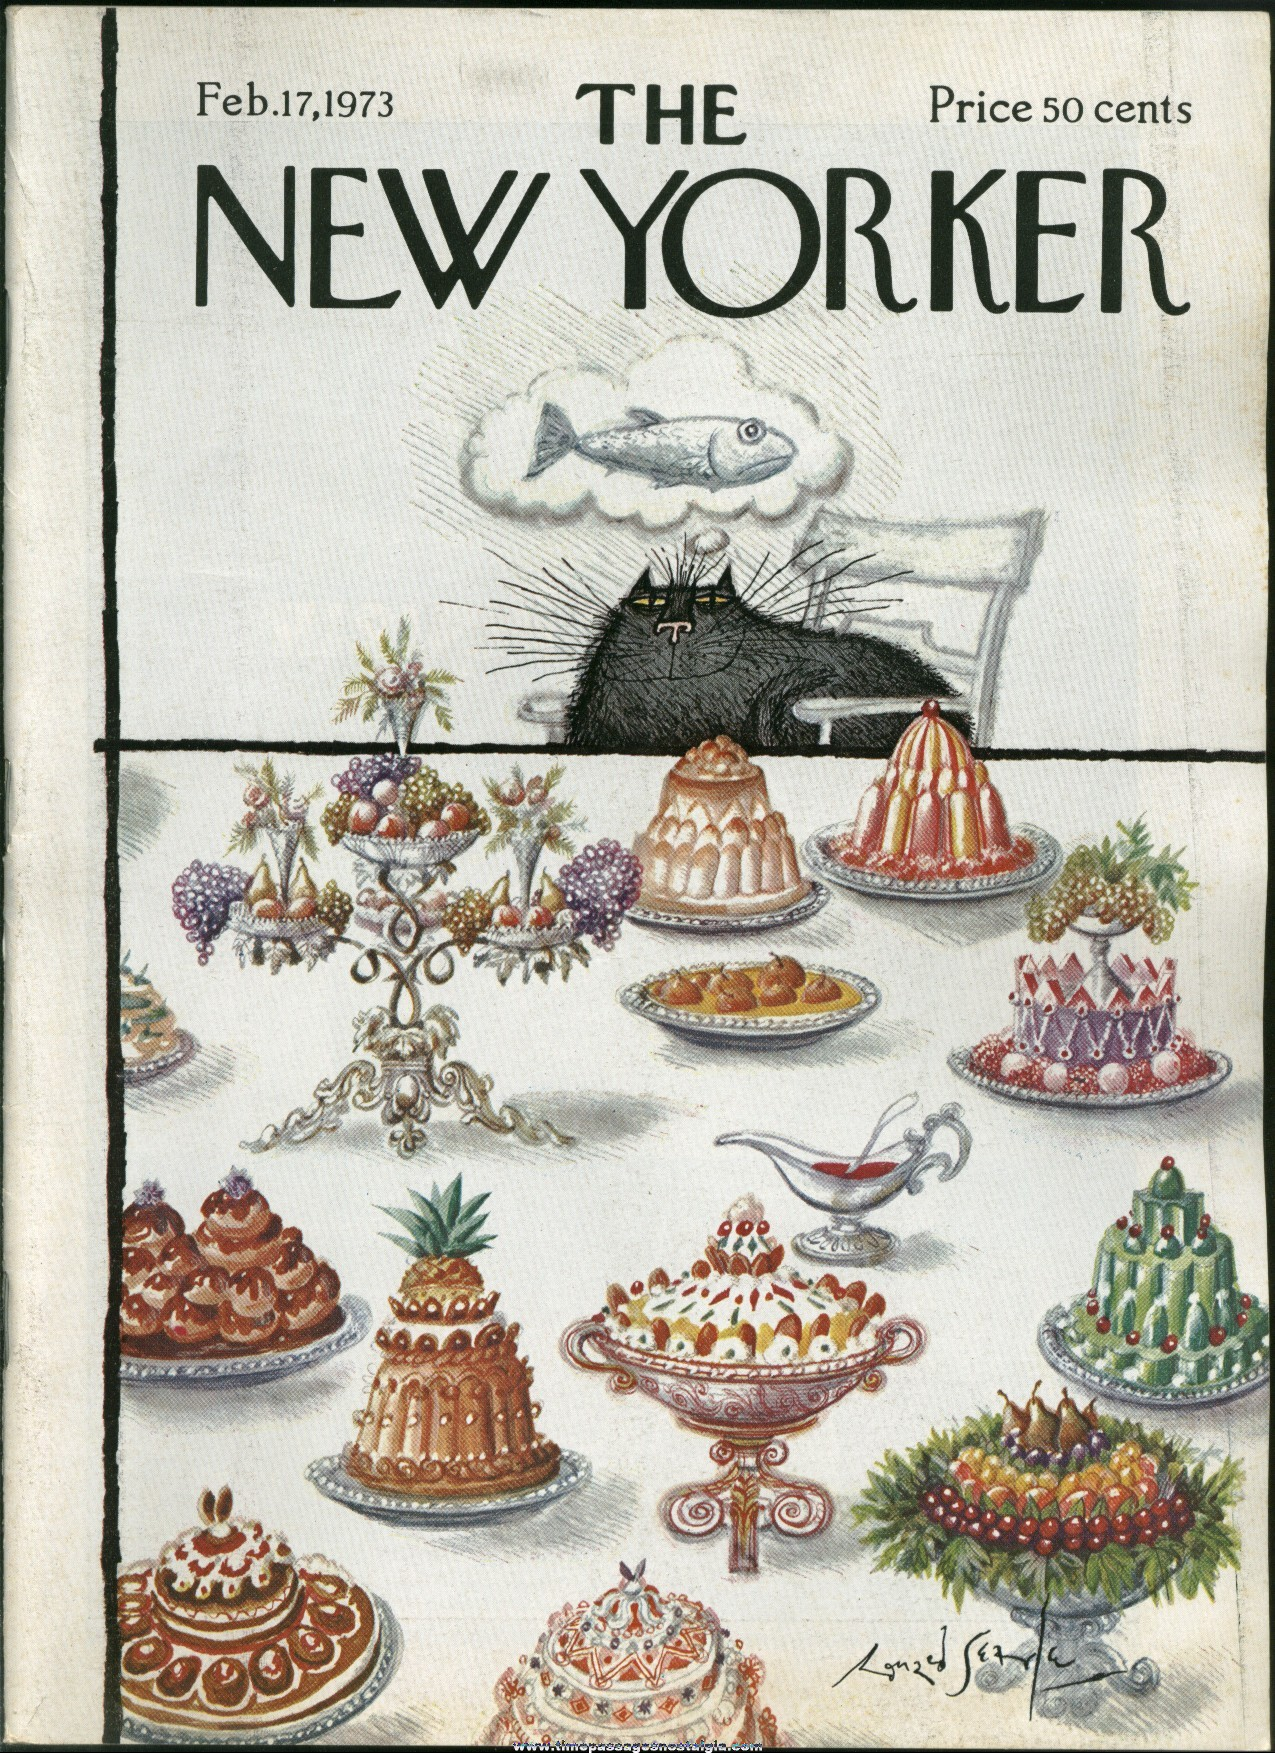 New Yorker Magazine - February 17, 1973 - Cover by Ronald Searle